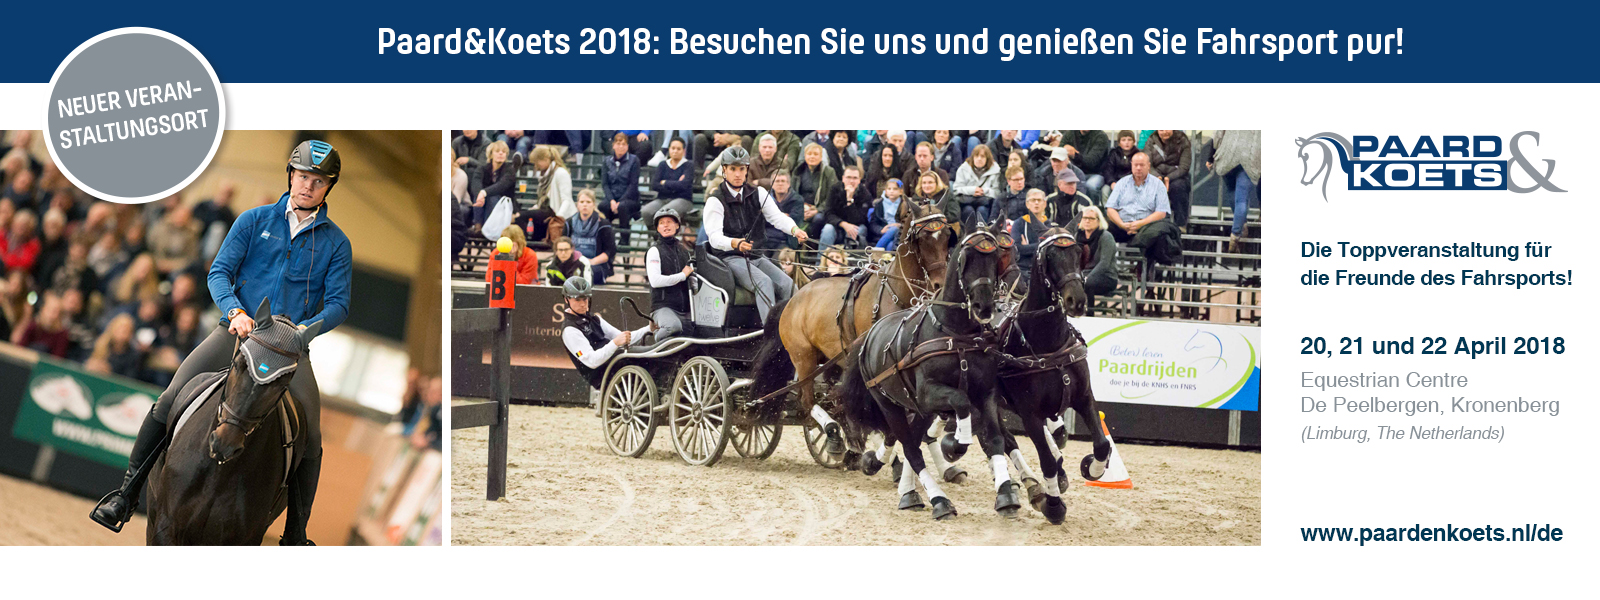 Paard & Koets 2018 -> all information